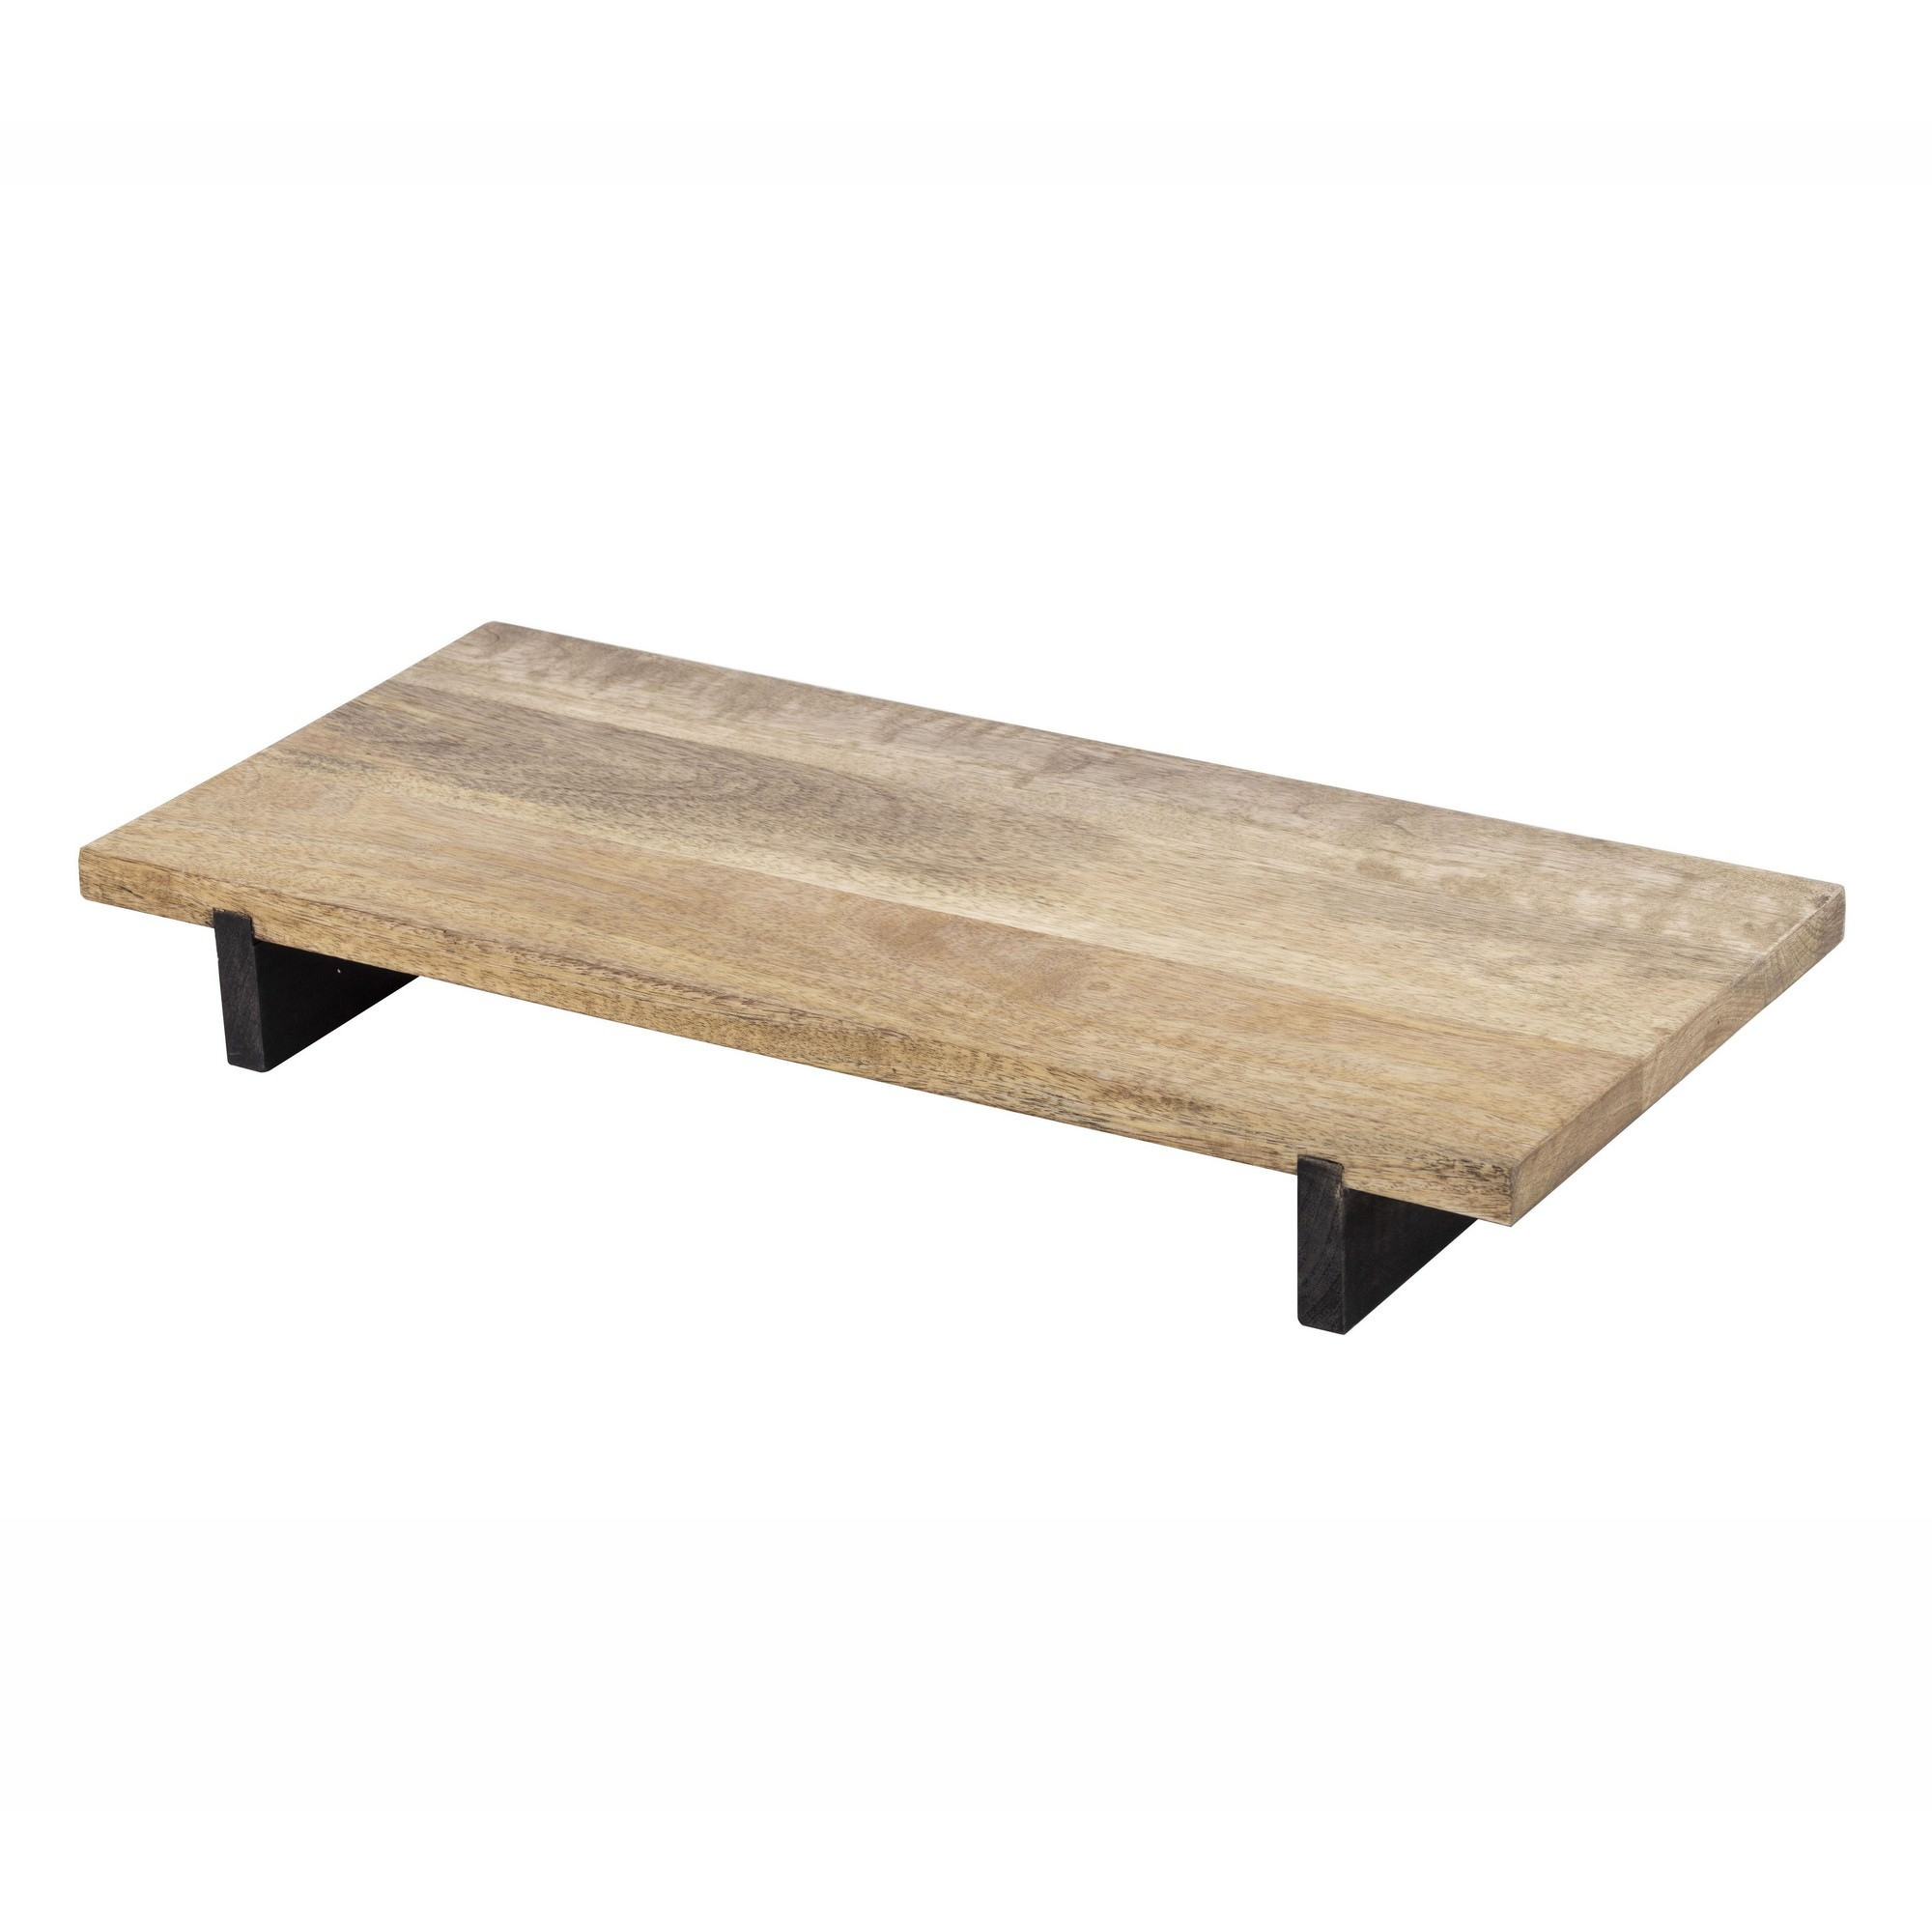 James Mango Wood Rectangular Serving Board with Metal Stand